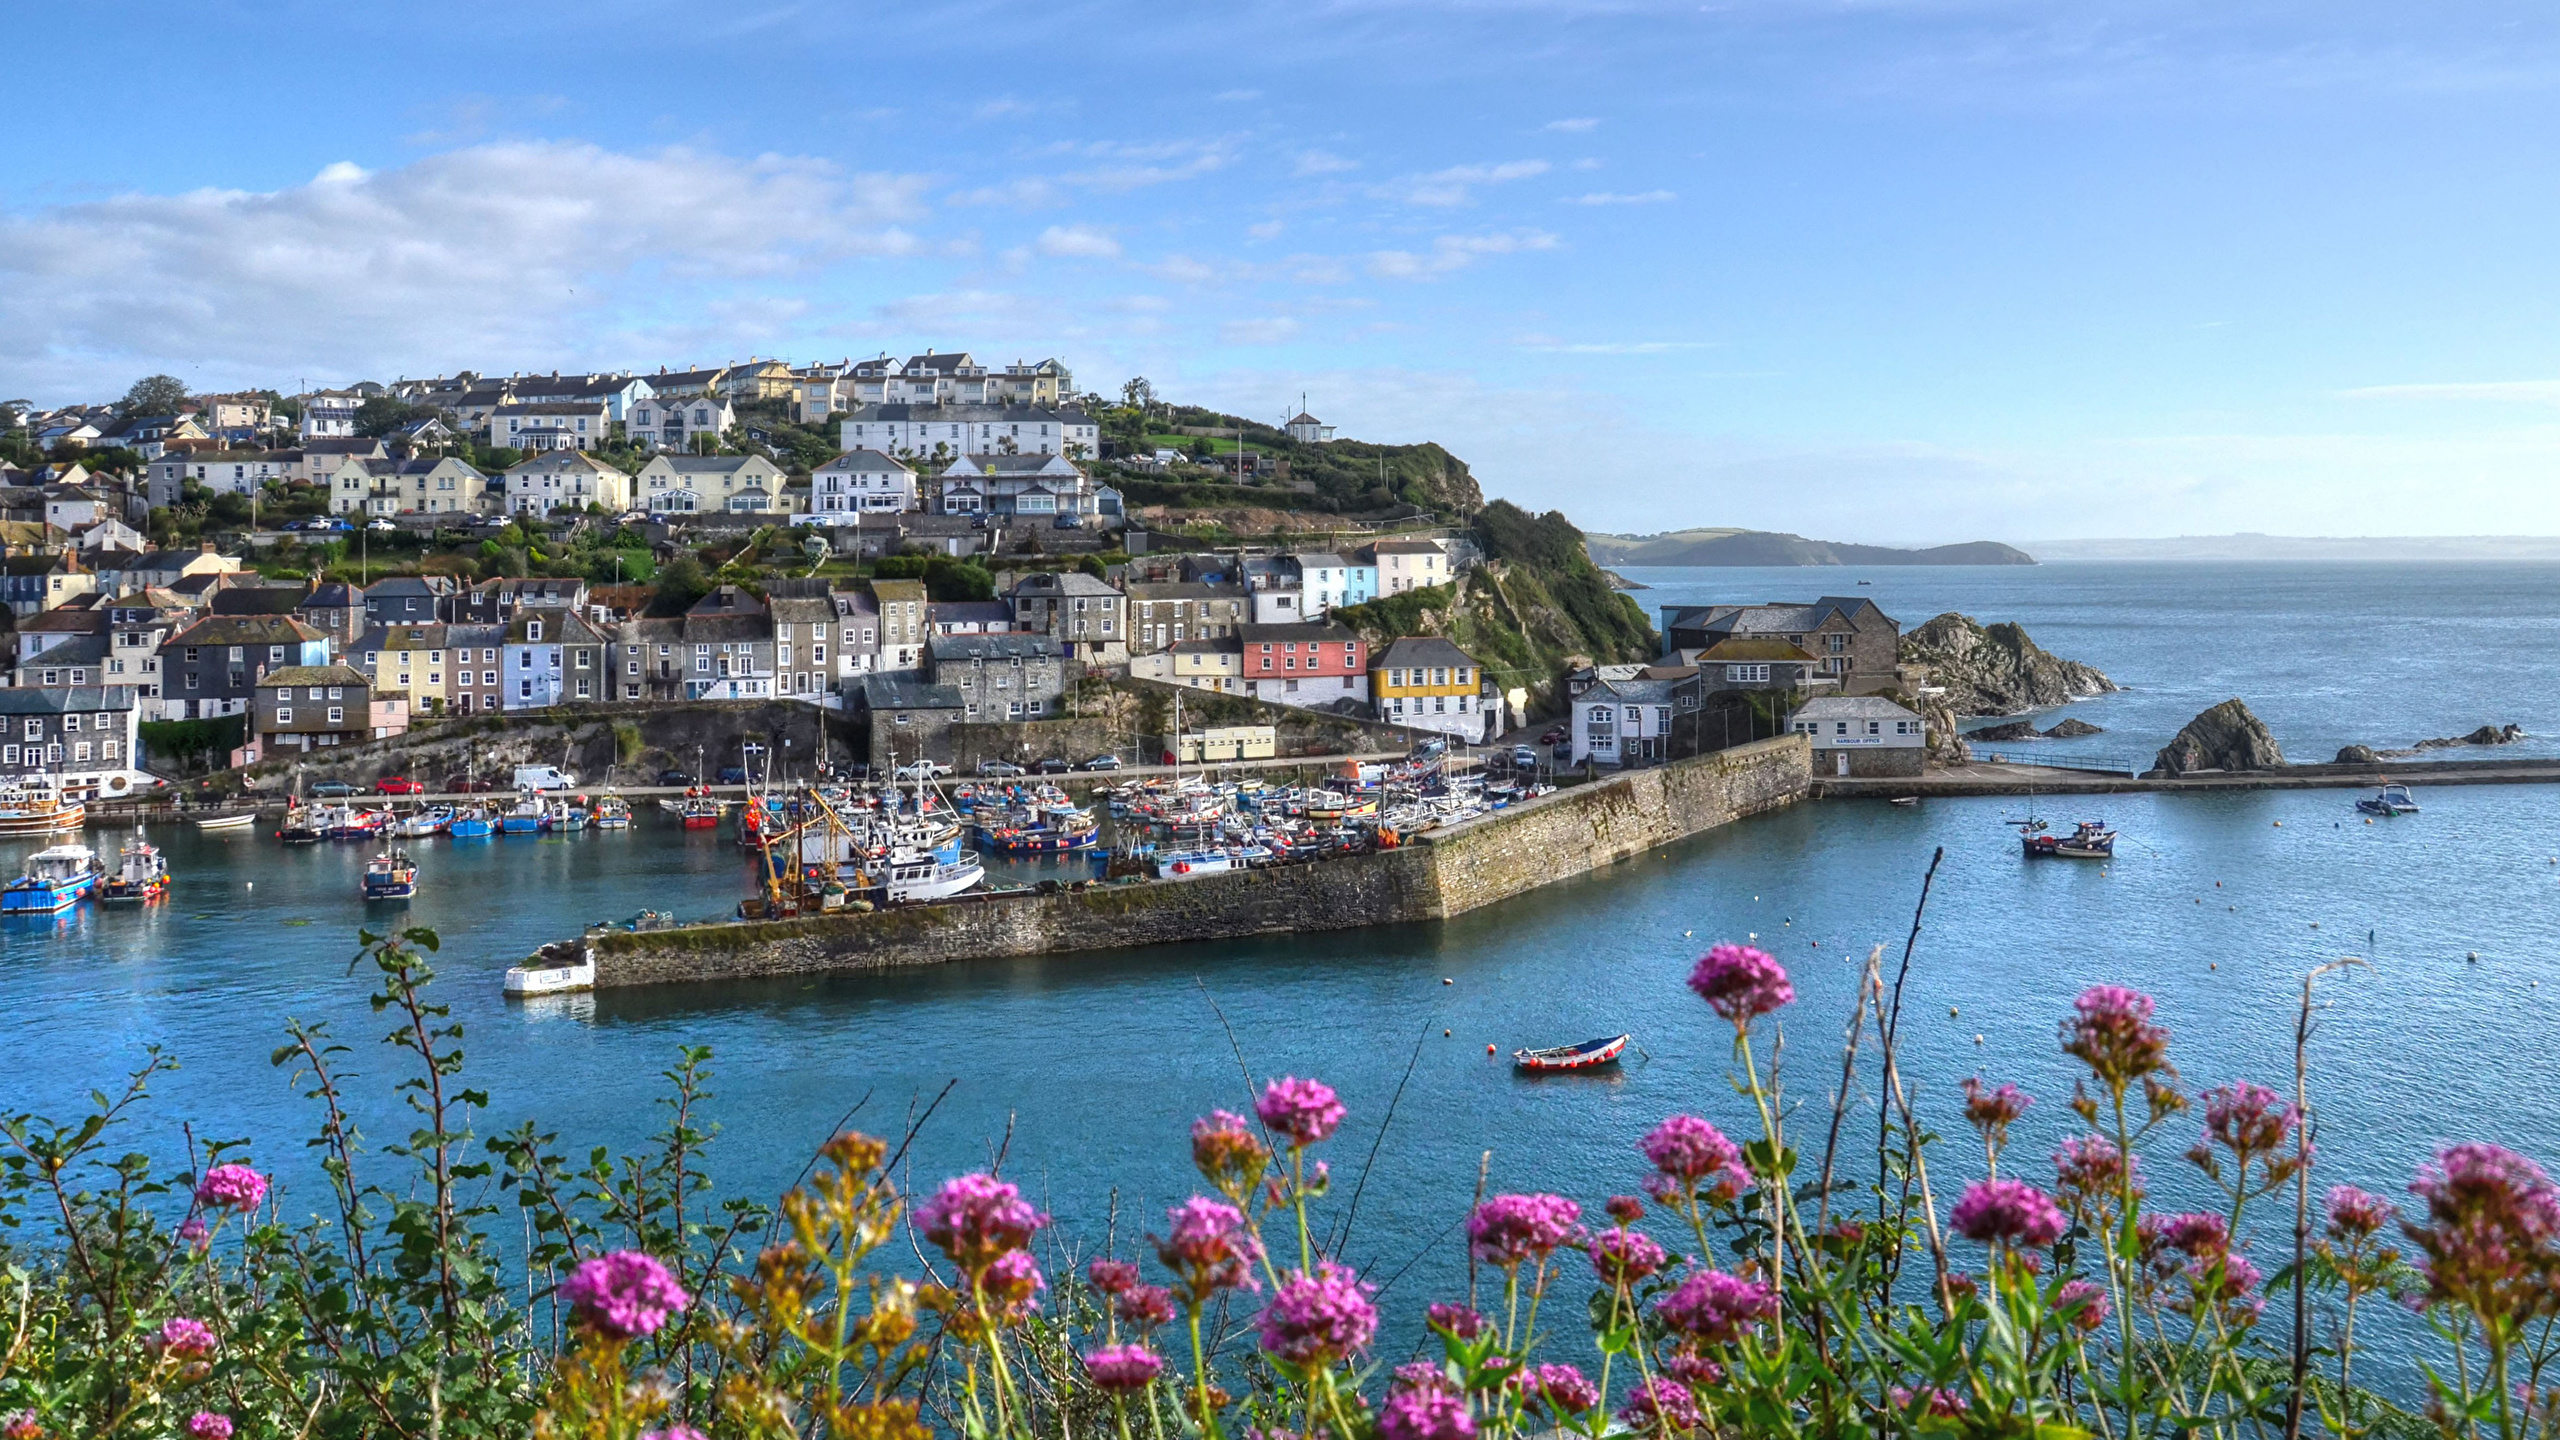 Images England Mevagissey Riverboat Bay Pier Cities Building 2560x1440 Berth Marinas Houses